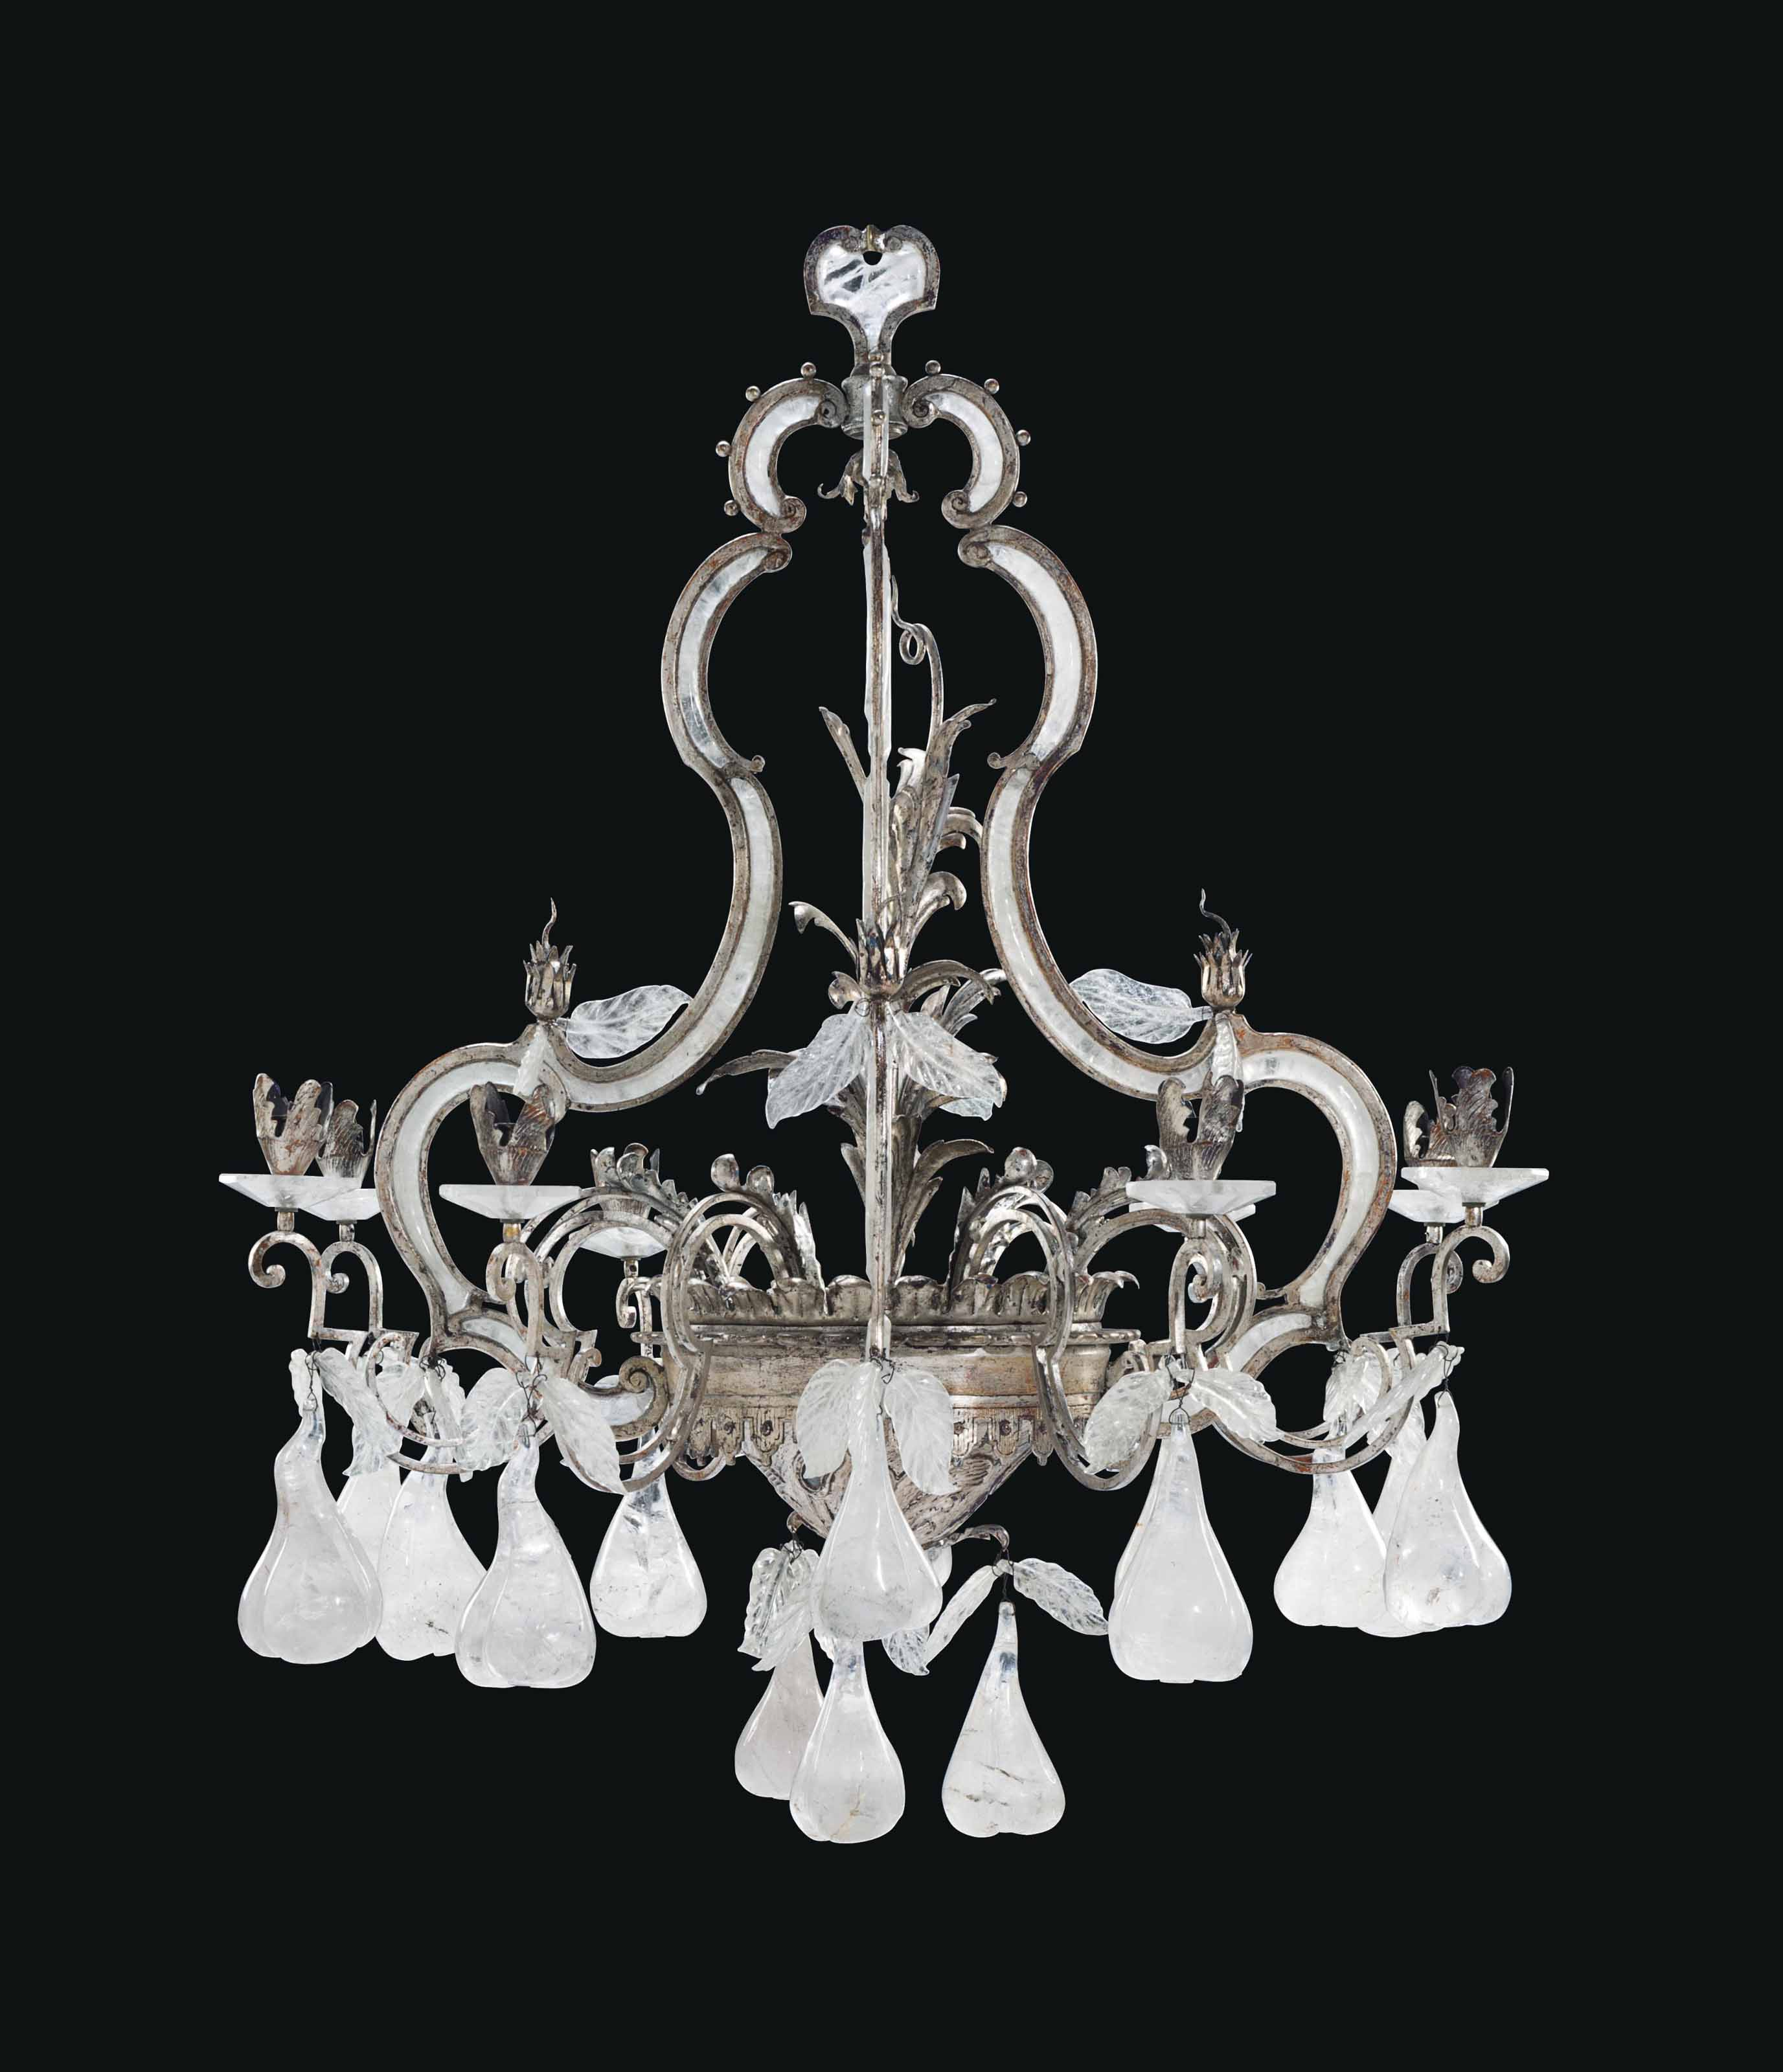 A LARGE SILVERED-METAL AND ROCK CRYSTAL EIGHT-LIGHT CHANDELIER